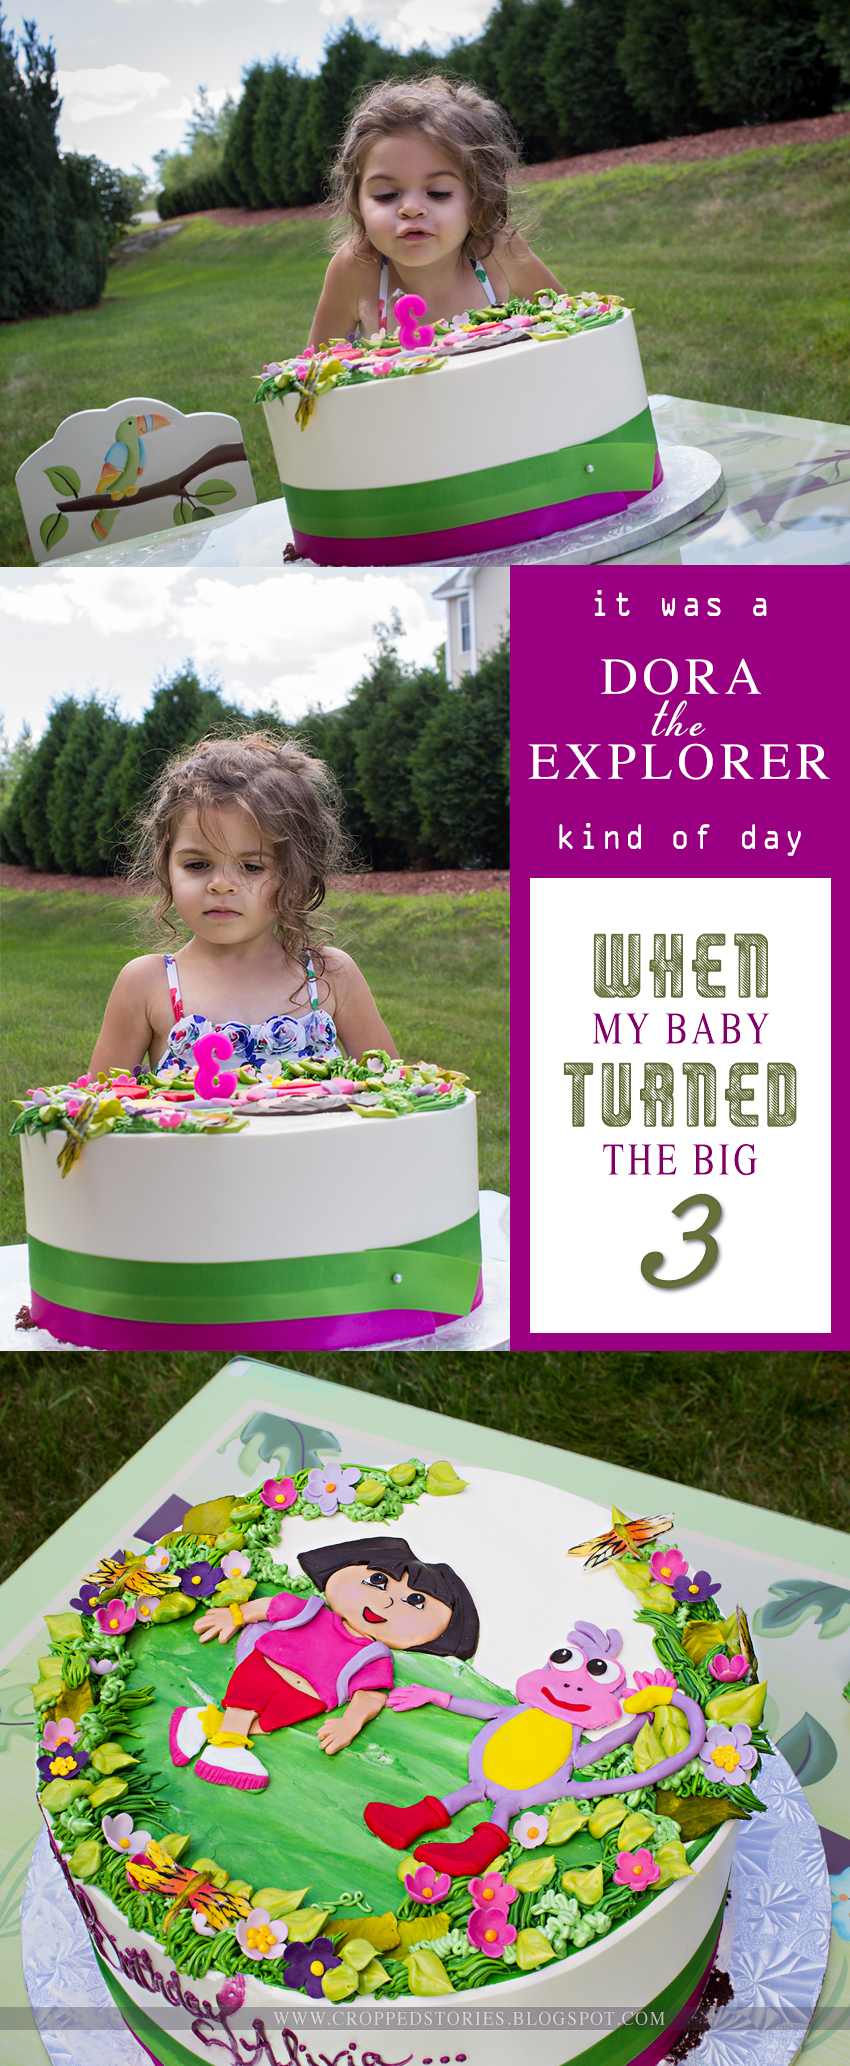 Livi's 3rd Dora Birthday Party